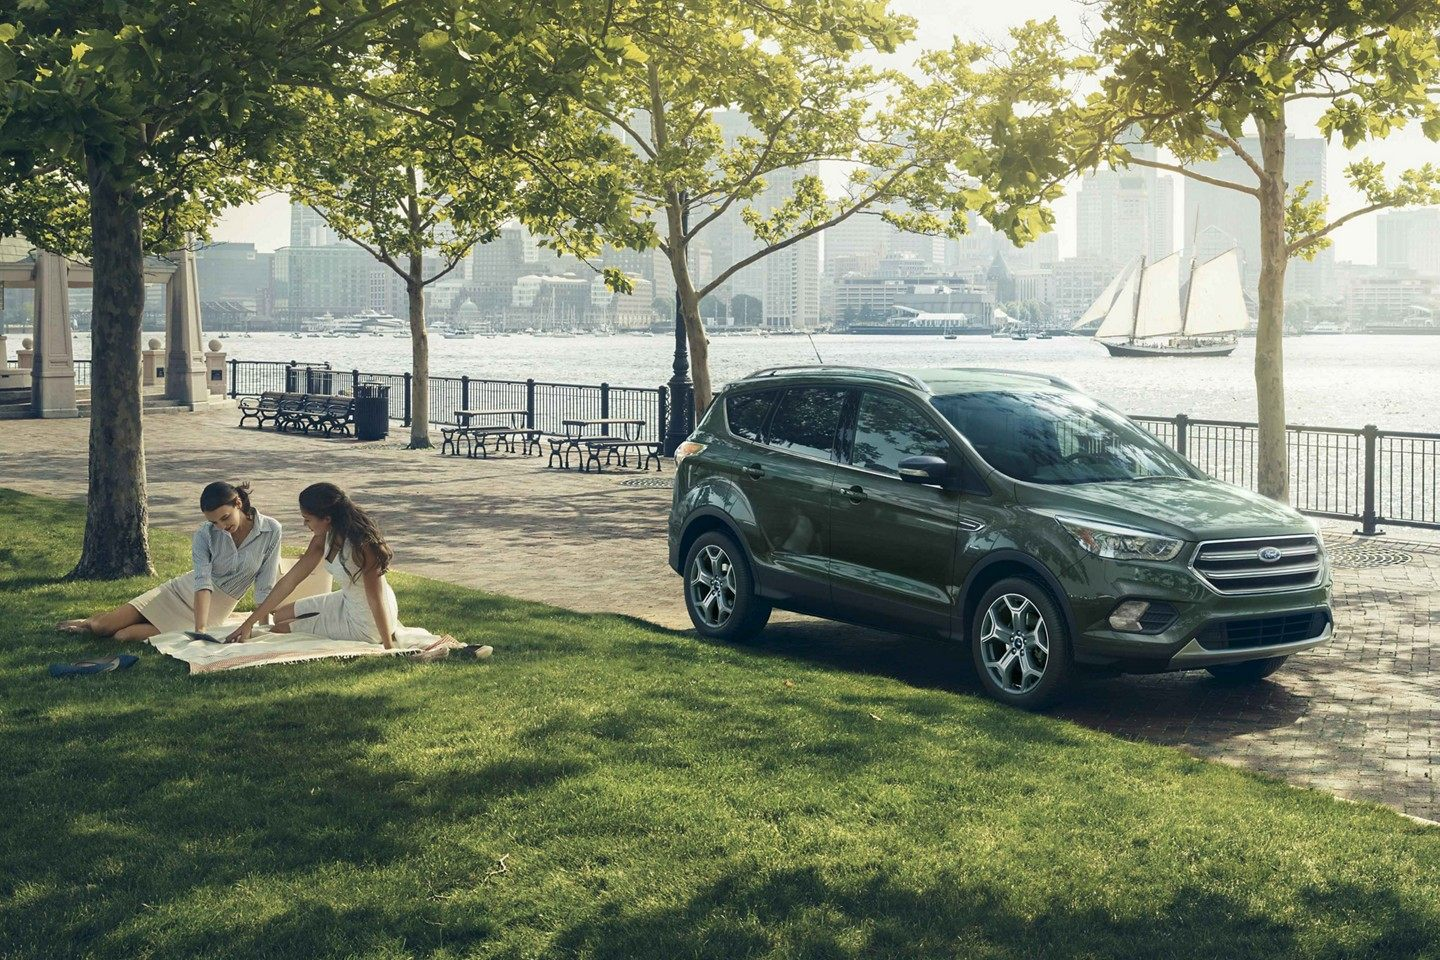 2019 Ford Escape for Sale near Mesquite, TX